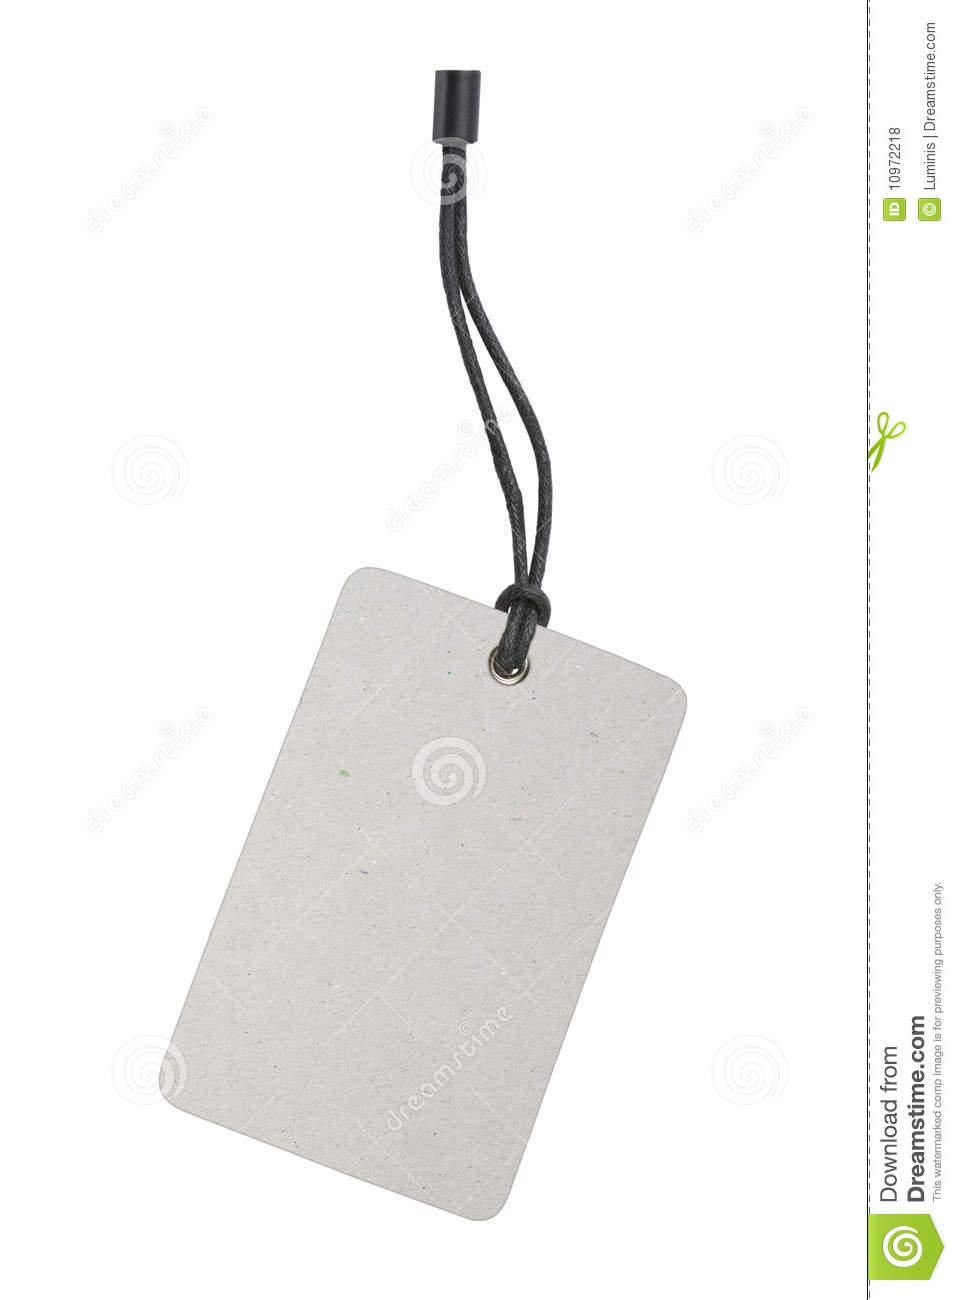 Blank Product Label Tag Royalty Free Stock Photos - Image: 10972218